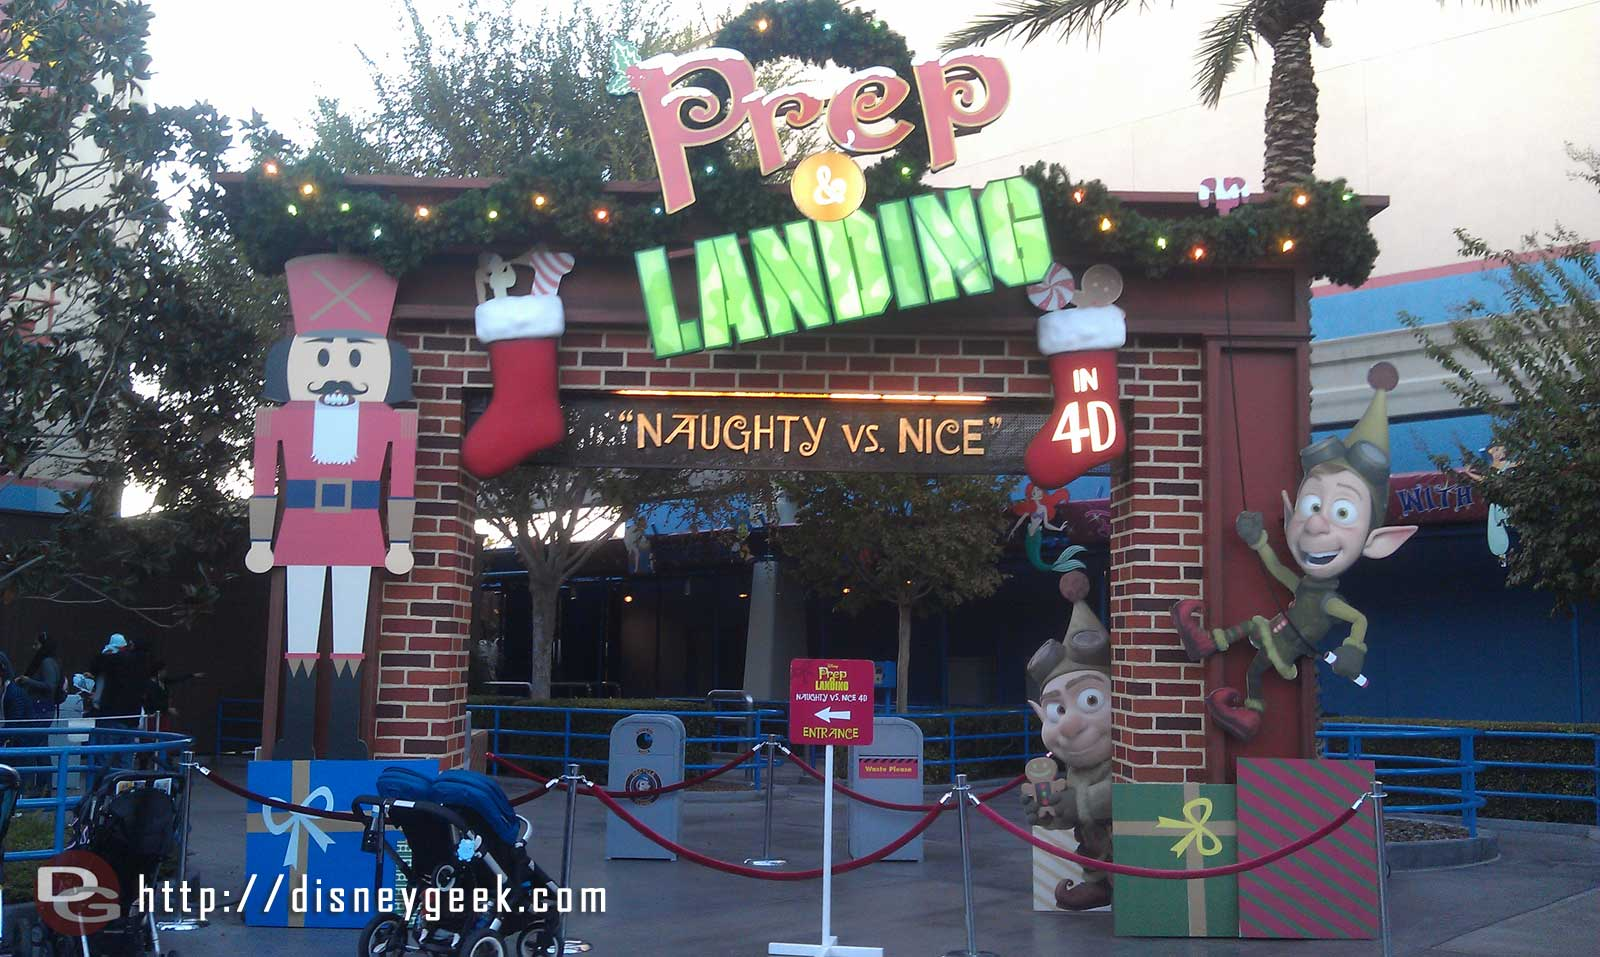 Prep and Landing has an entrance sign up this trip.